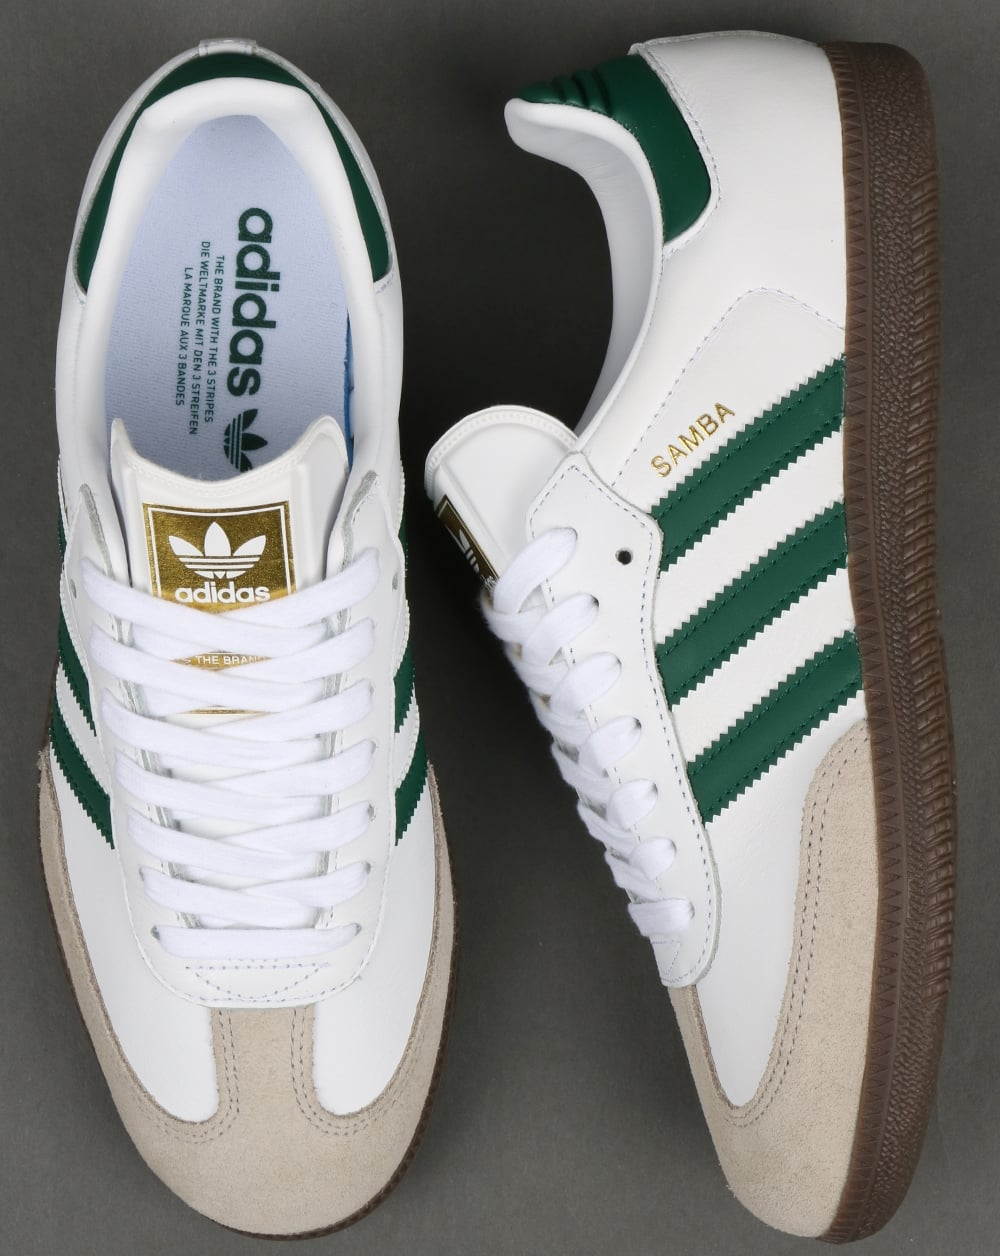 adidas originals gazelle vintage green and white trainers